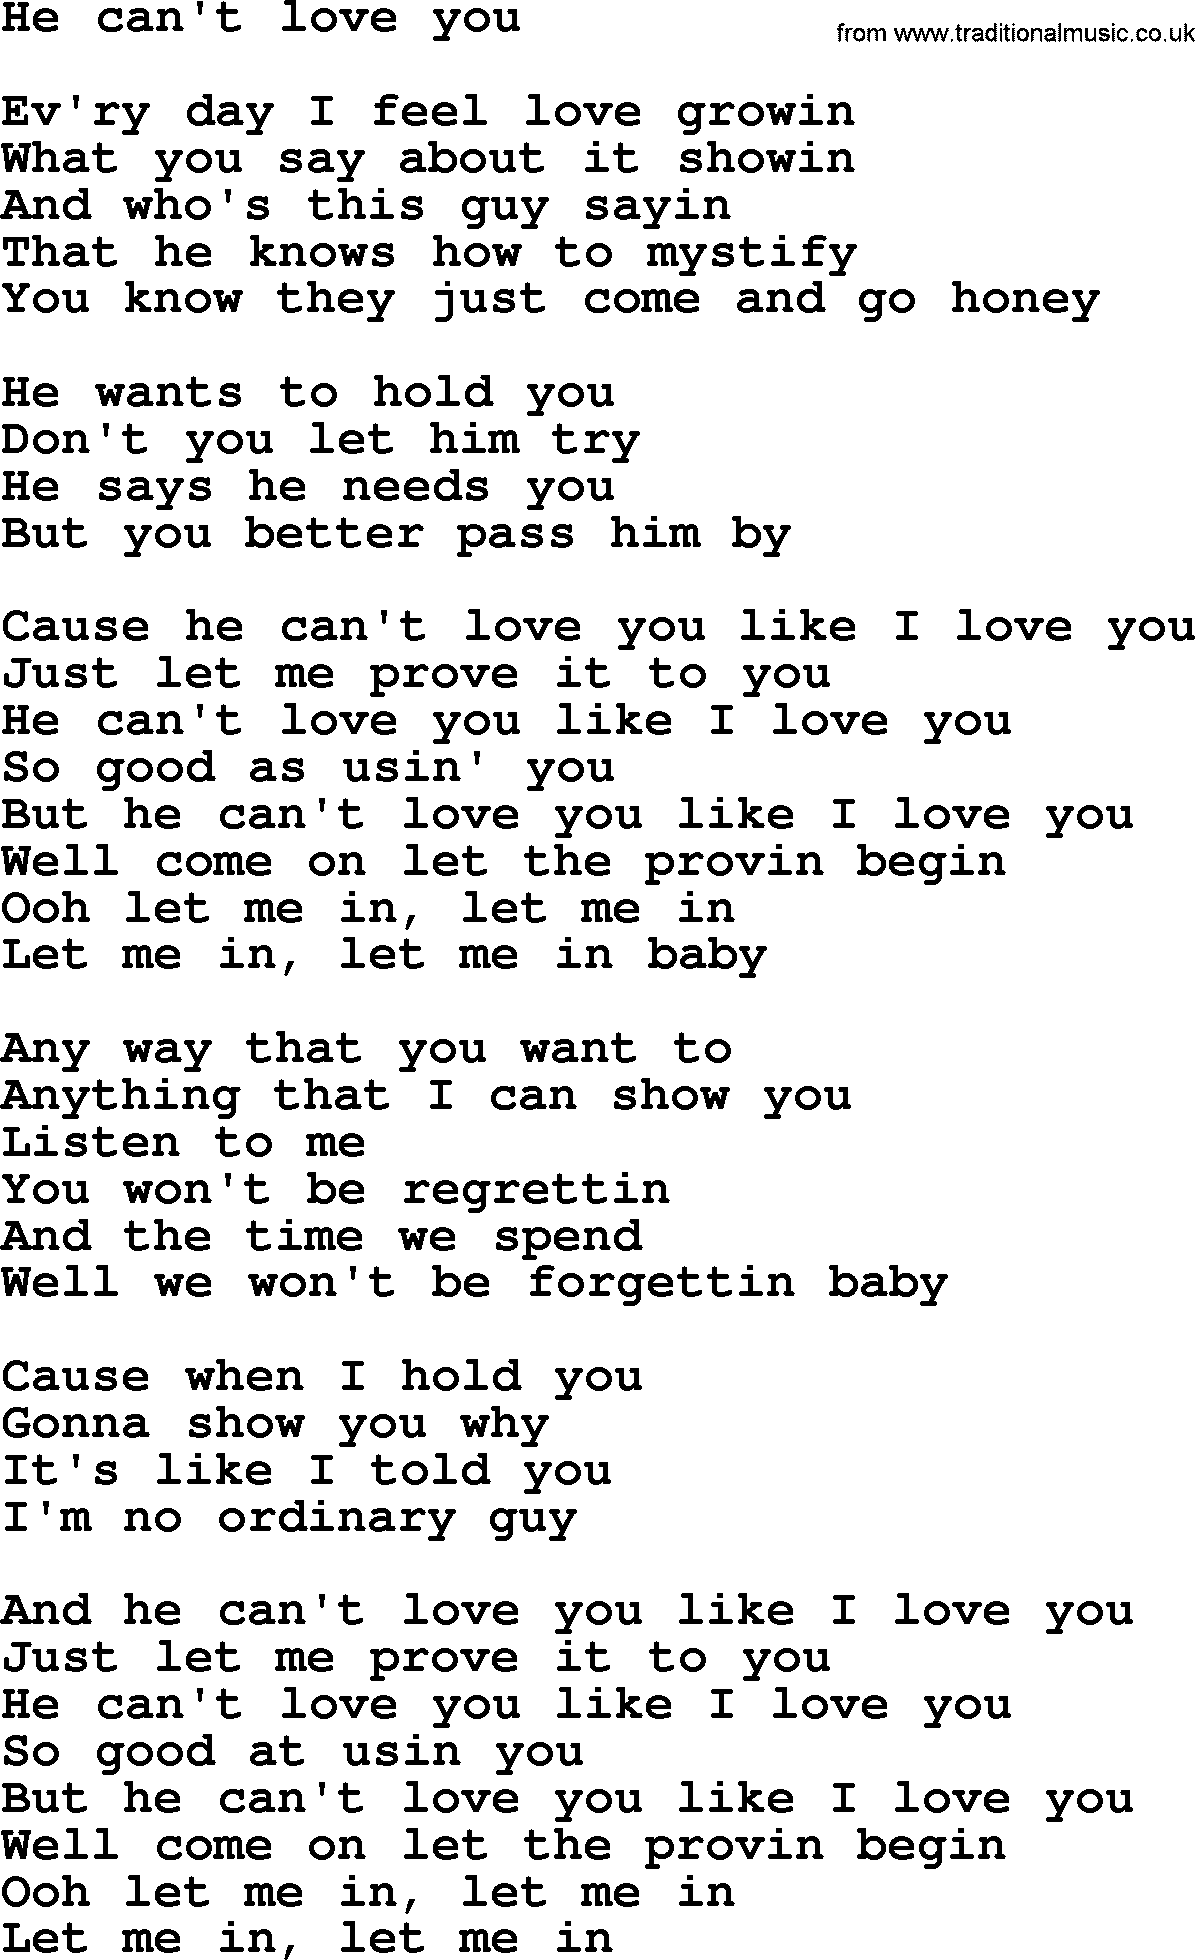 Bruce Springsteen song: He Can't Love You, lyrics